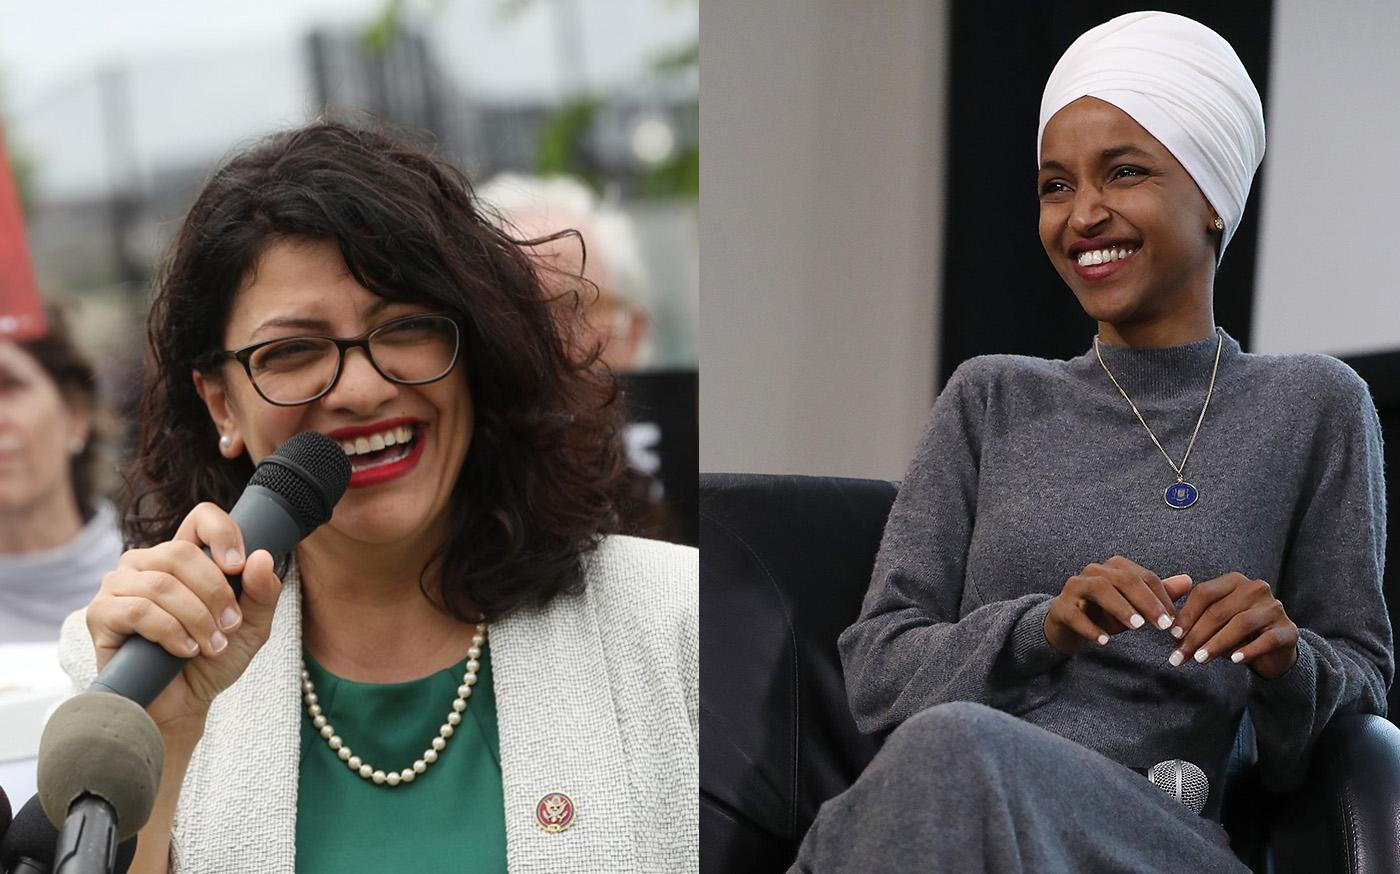 Will Israel's treatment of Omar and Tlaib finally wake Democrats up?